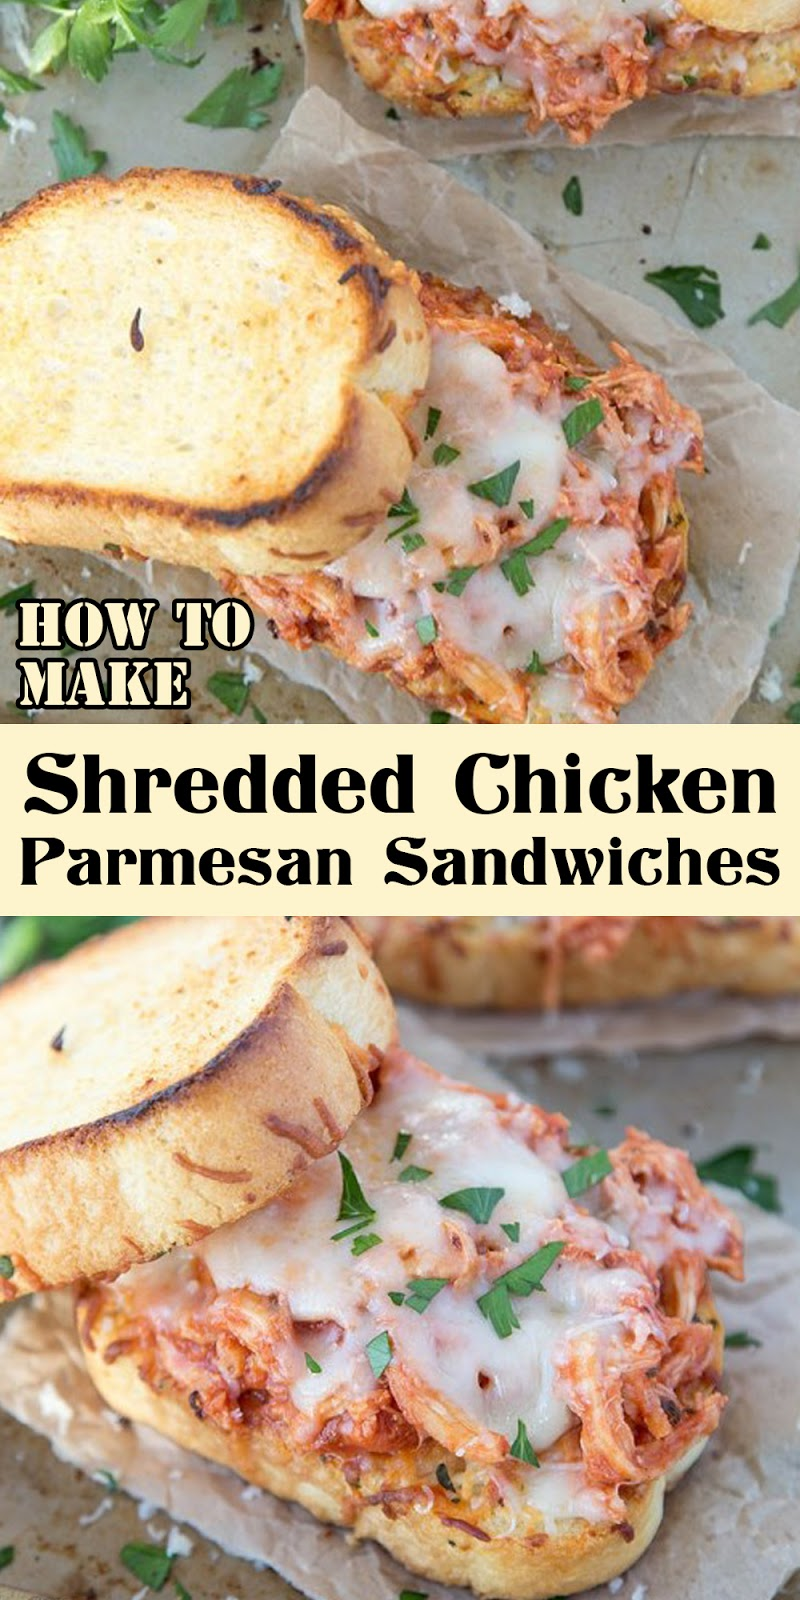 SHREDDED CHICKEN PARMESAN SANDWICHES